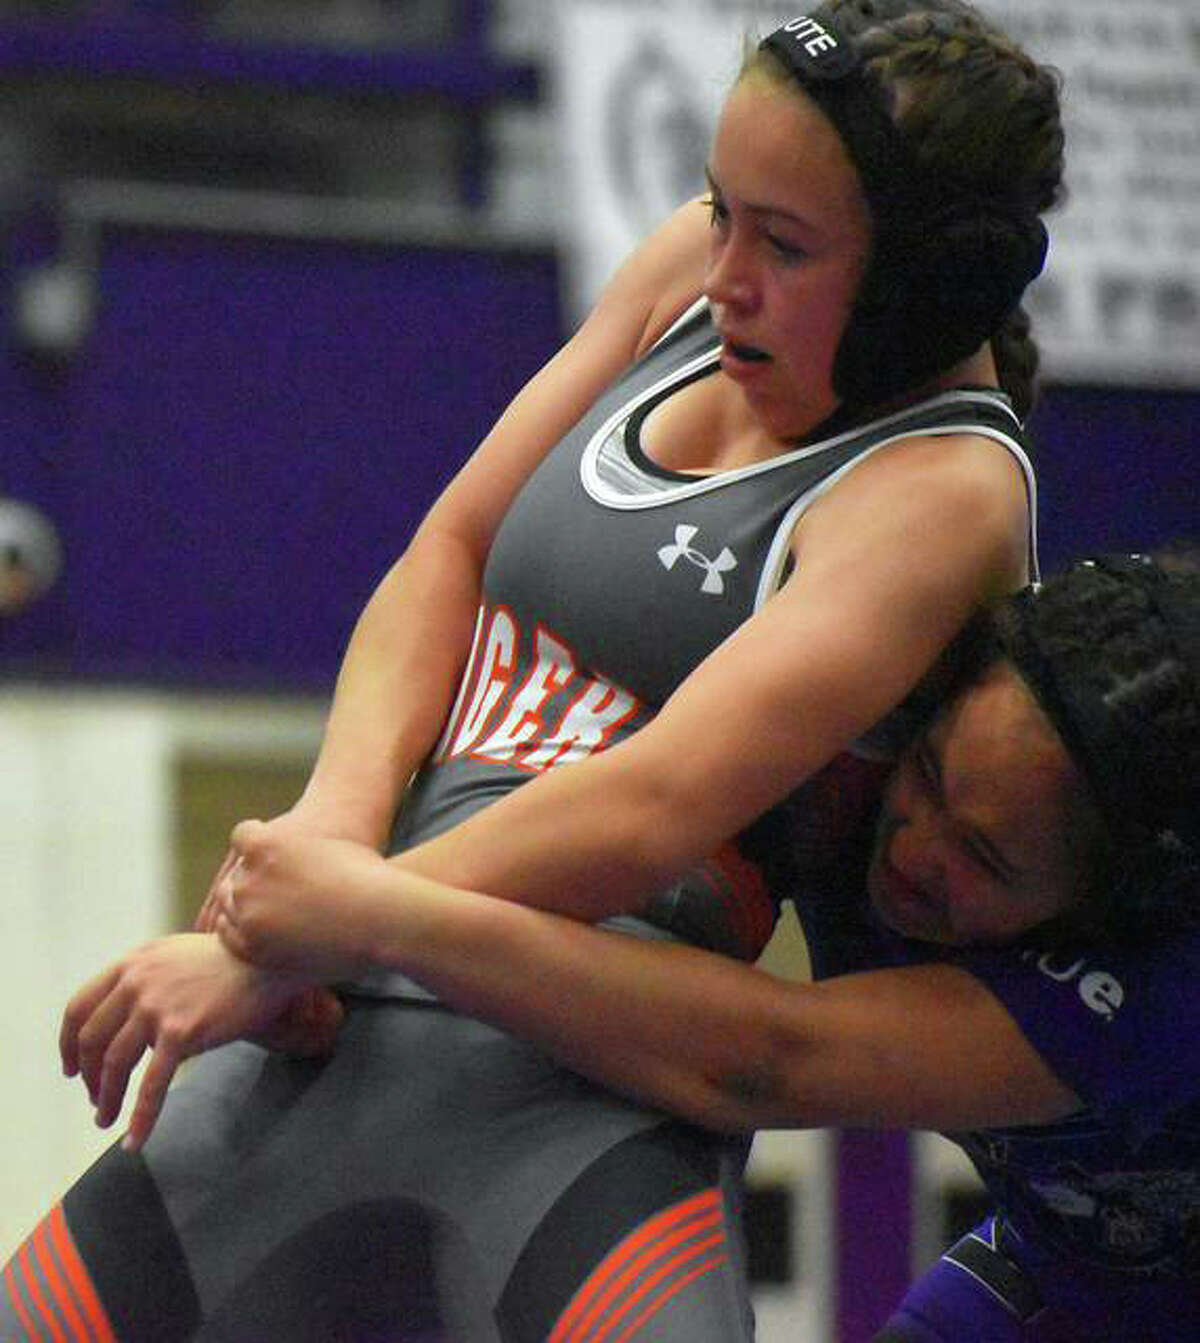 Edwardsville High School's Olivia Coll tries to break out of a hold early in the second round of her match at 113 pounds against Collinsville in April.